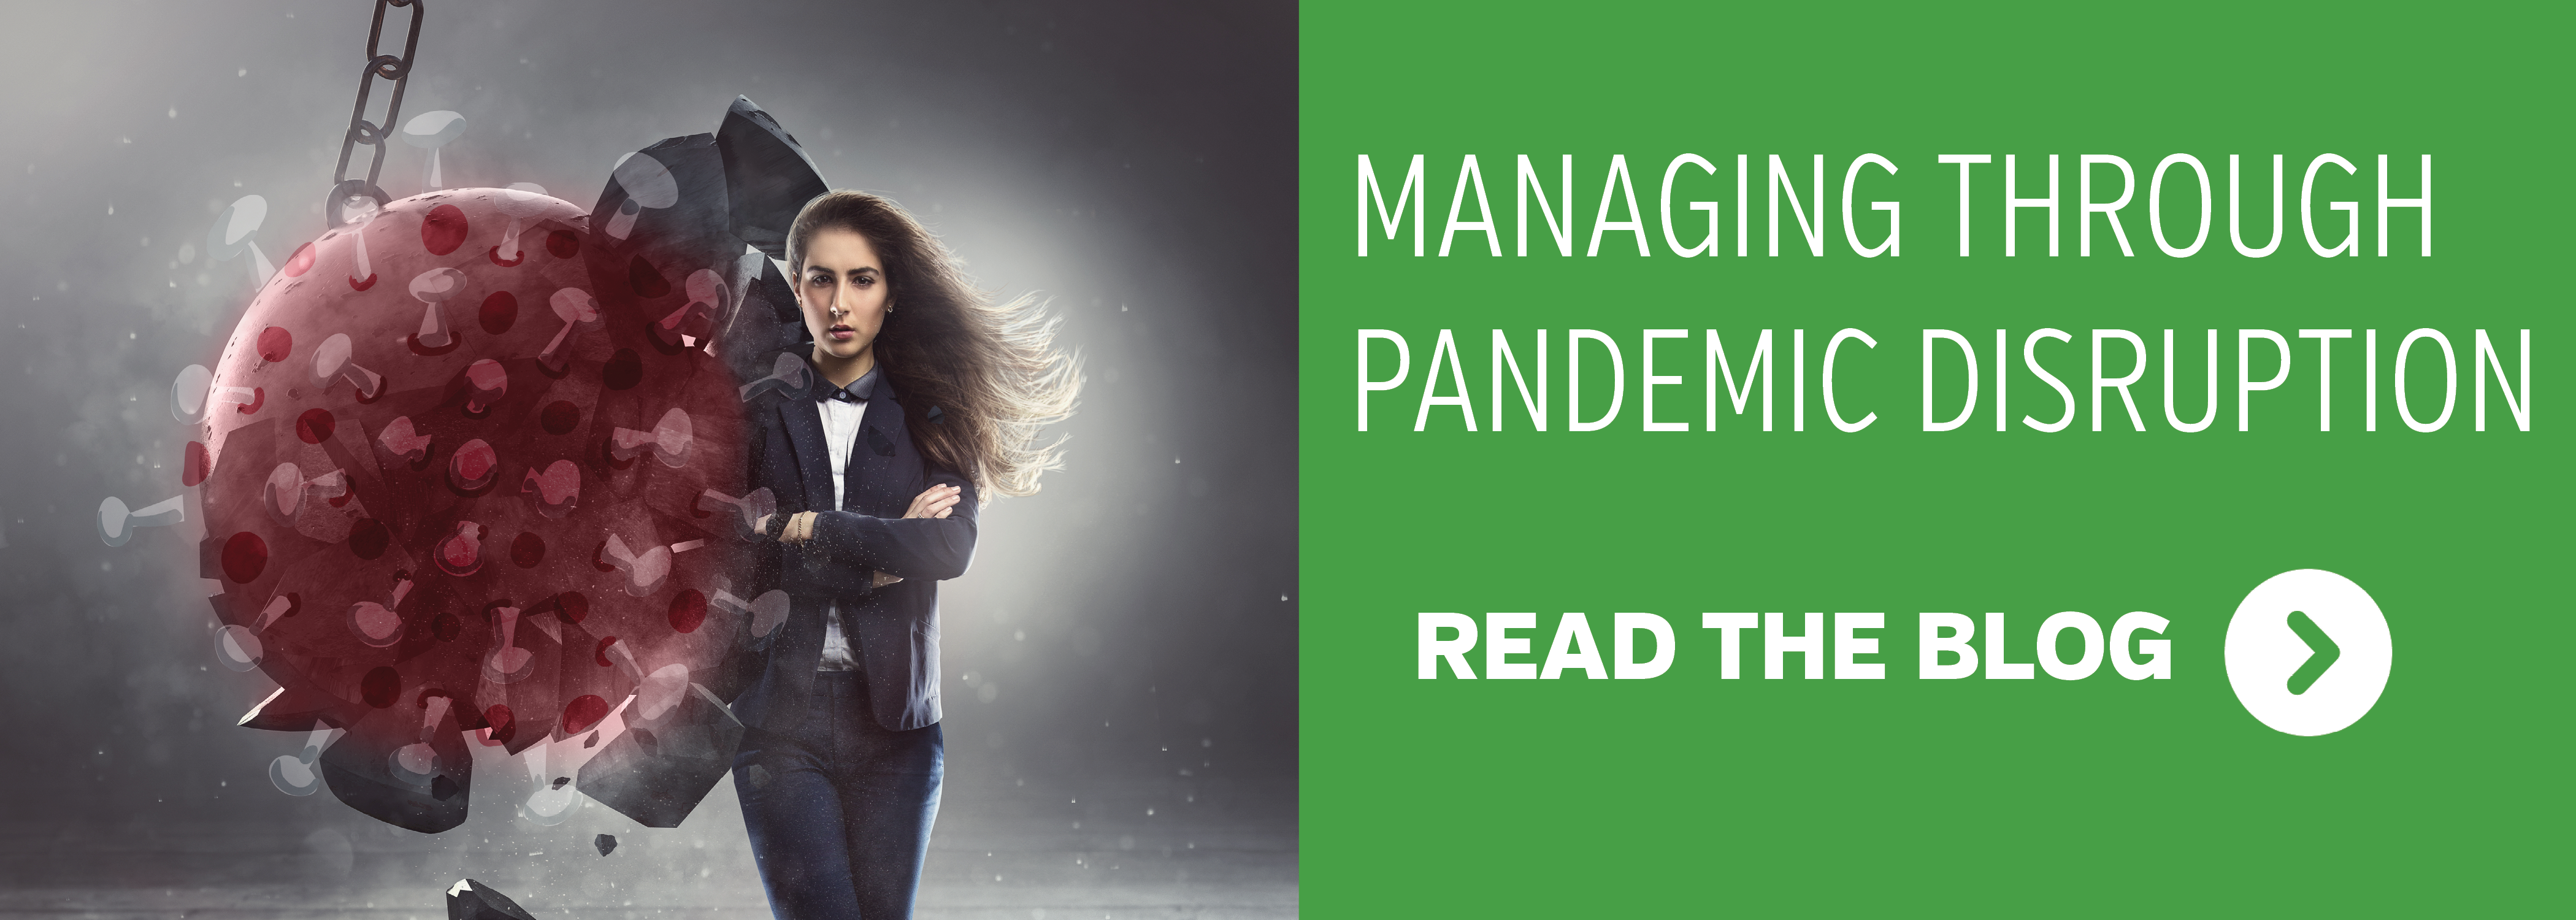 Related Content - Managing Through Pandemic Disruption.  Read the blog